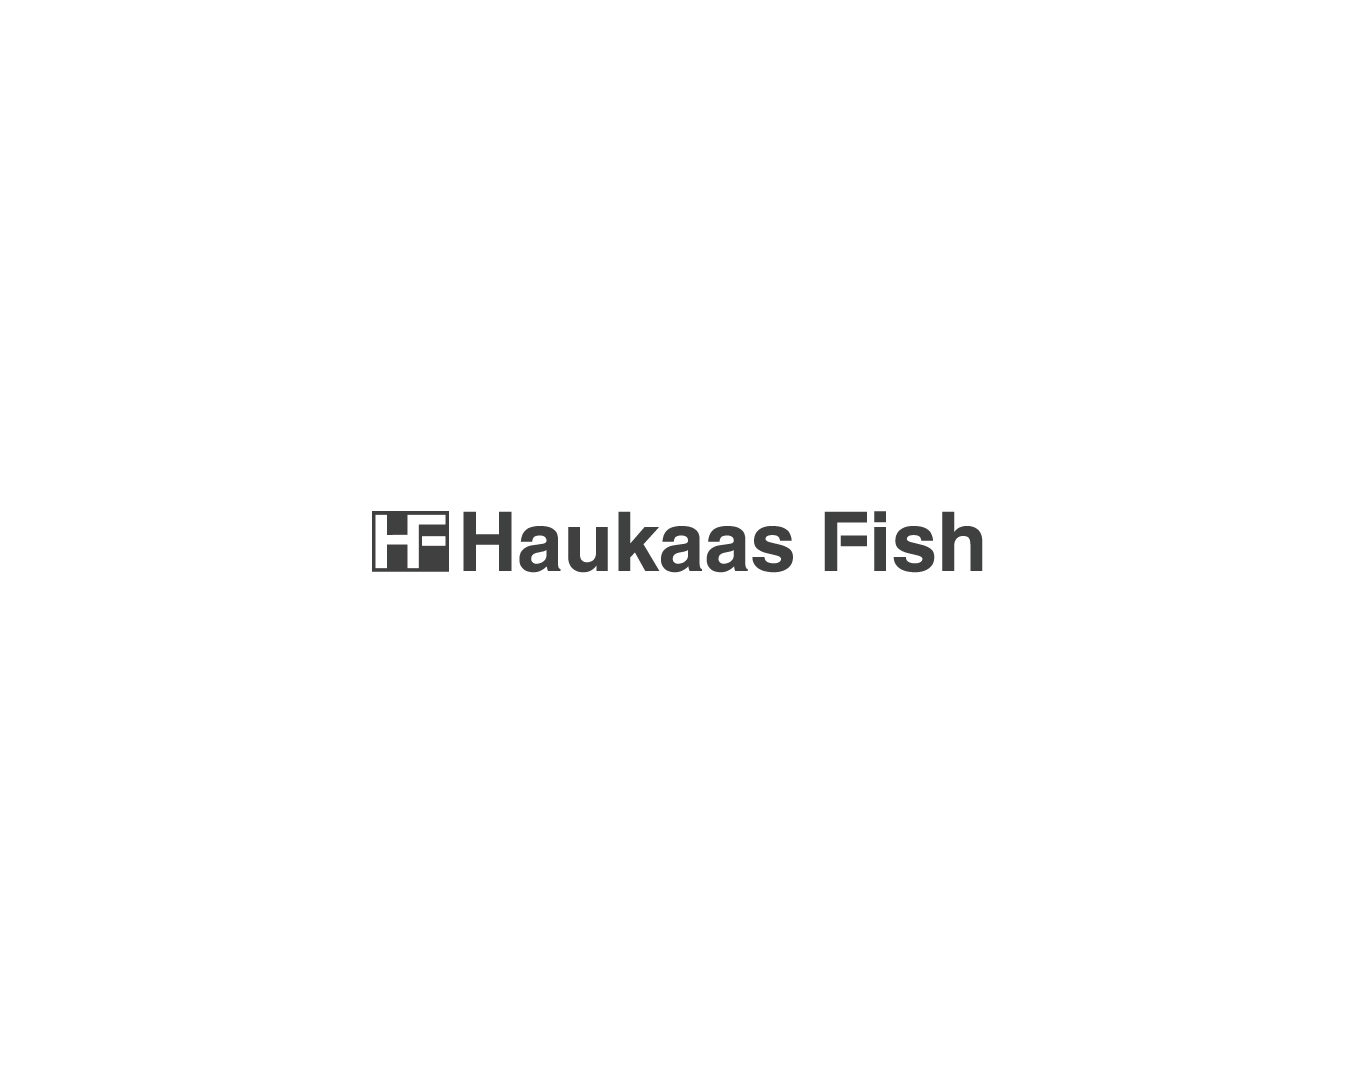 Law firm logo design for haukaas fish by williamtk for Fish law firm